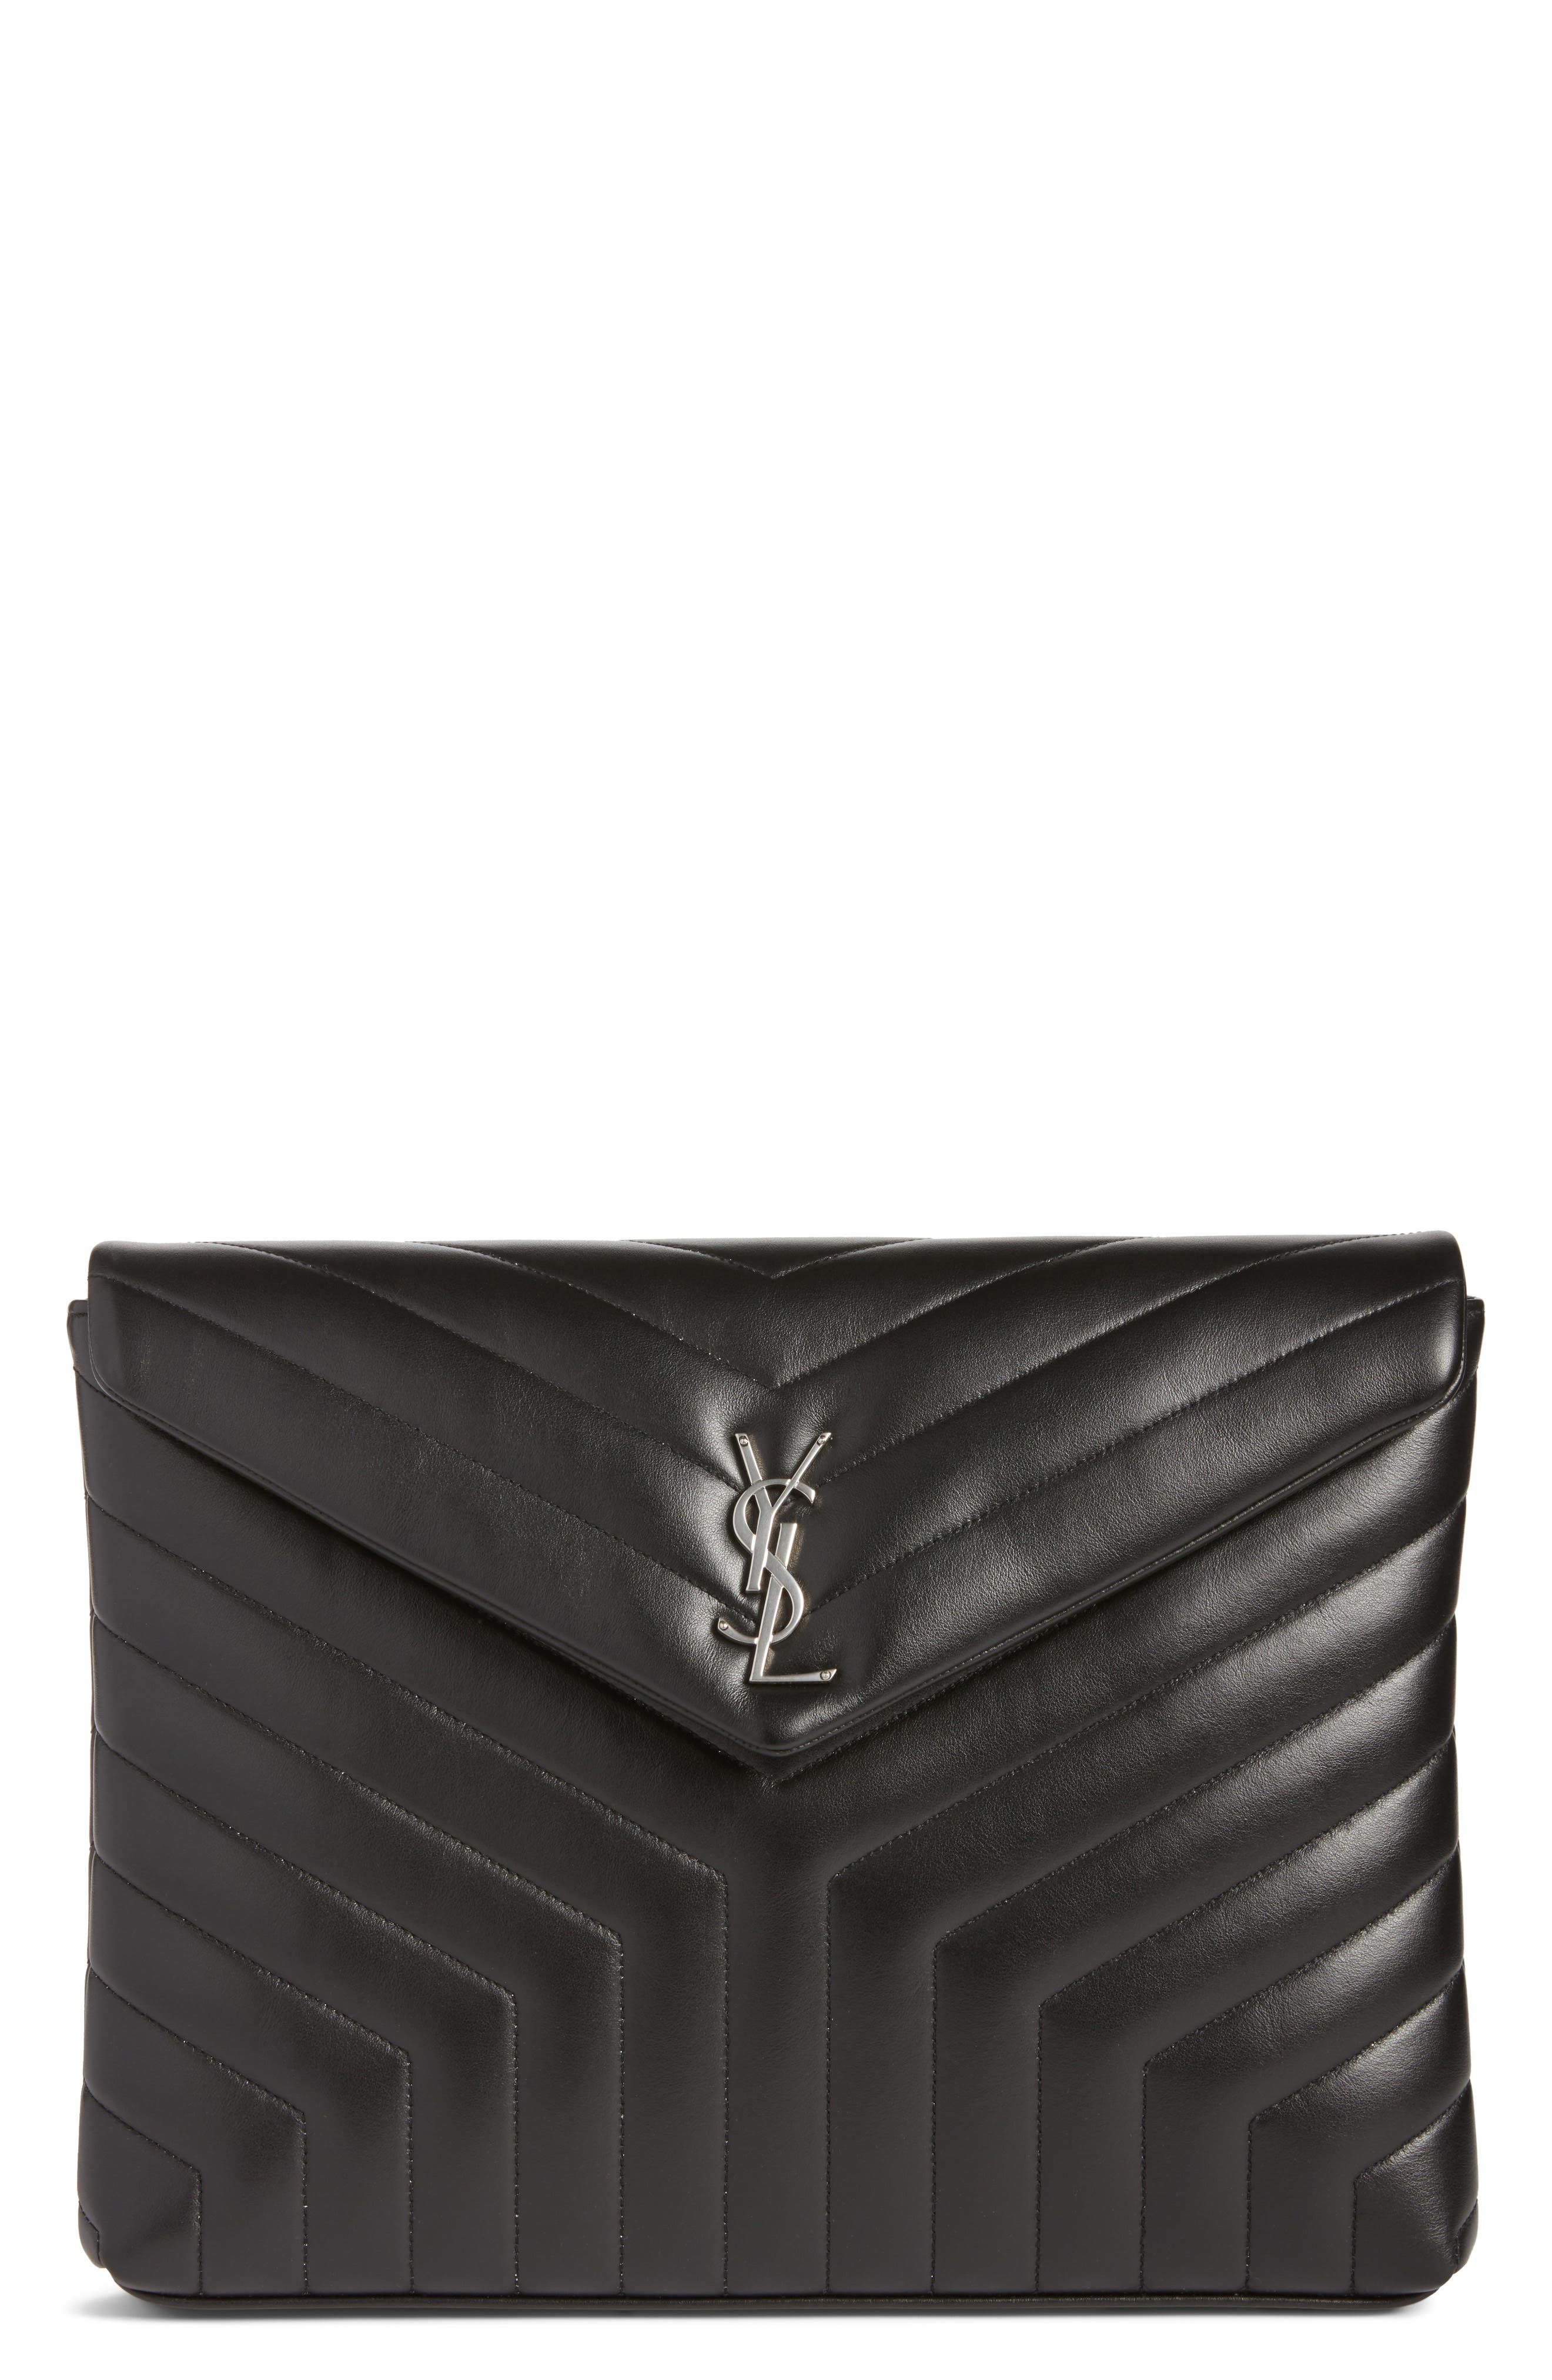 Saint Laurent Large Loulou Matelassé Leather Pouch